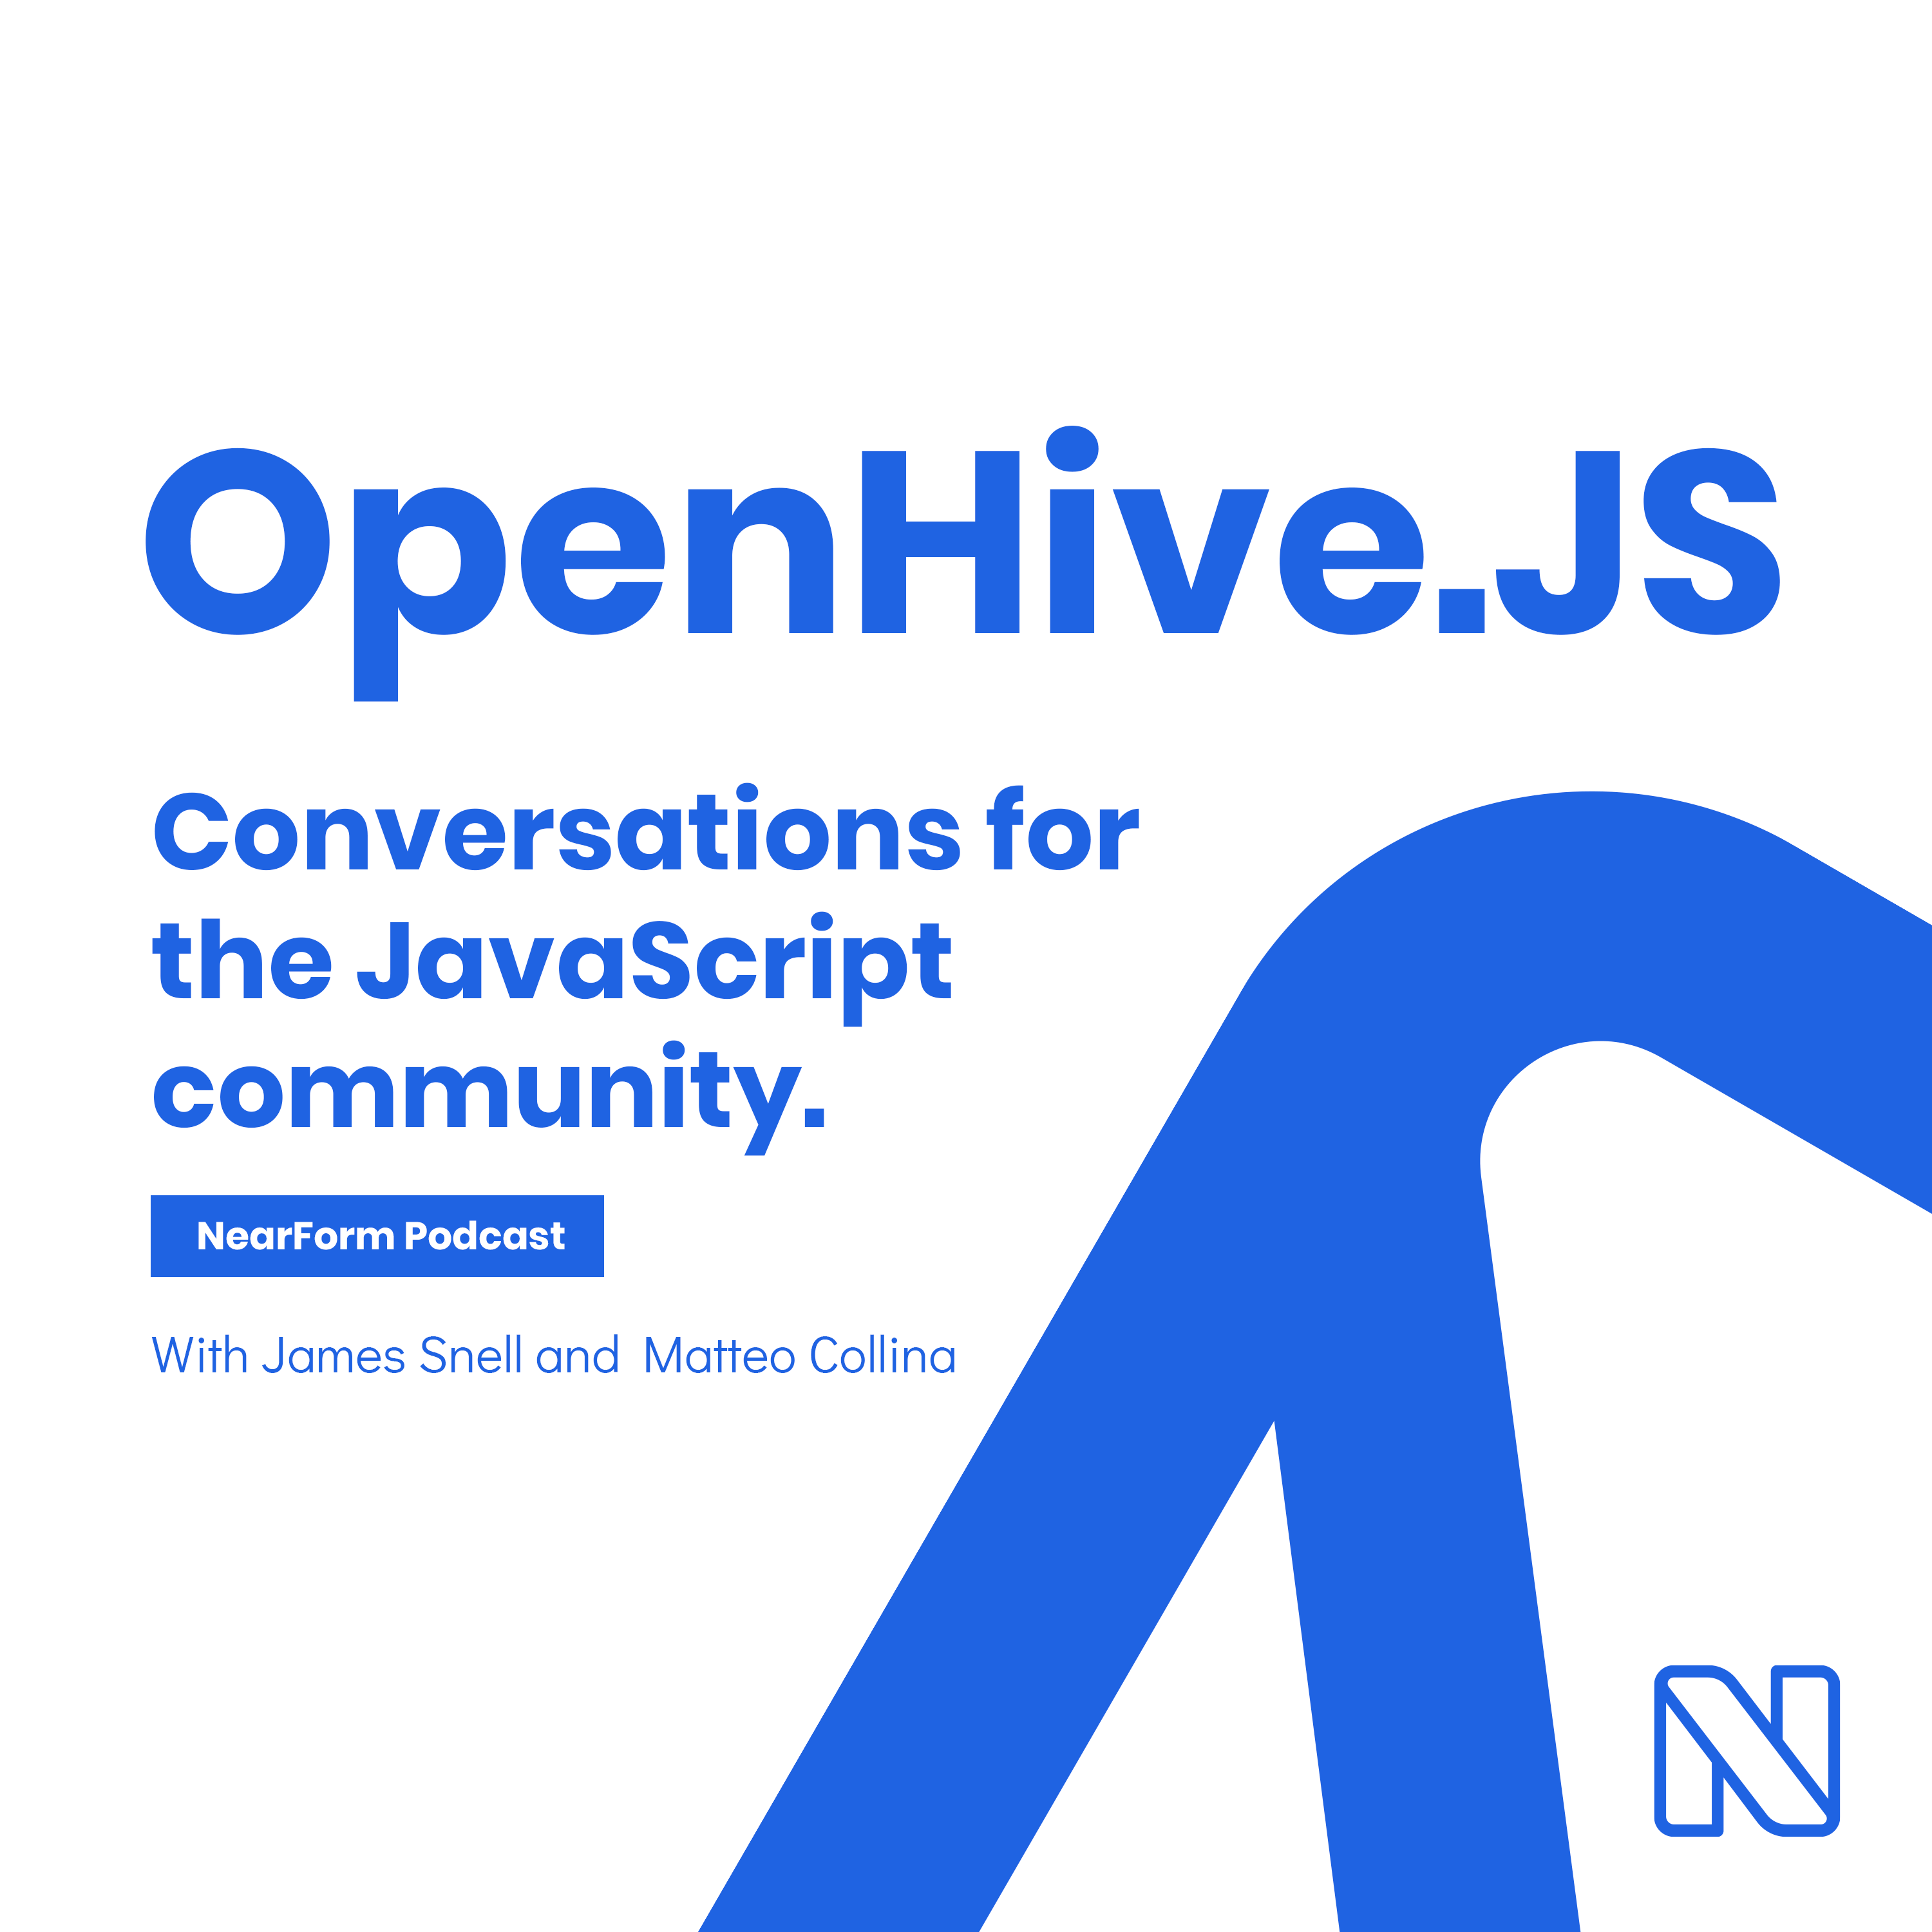 OpenHive.js intro graphic